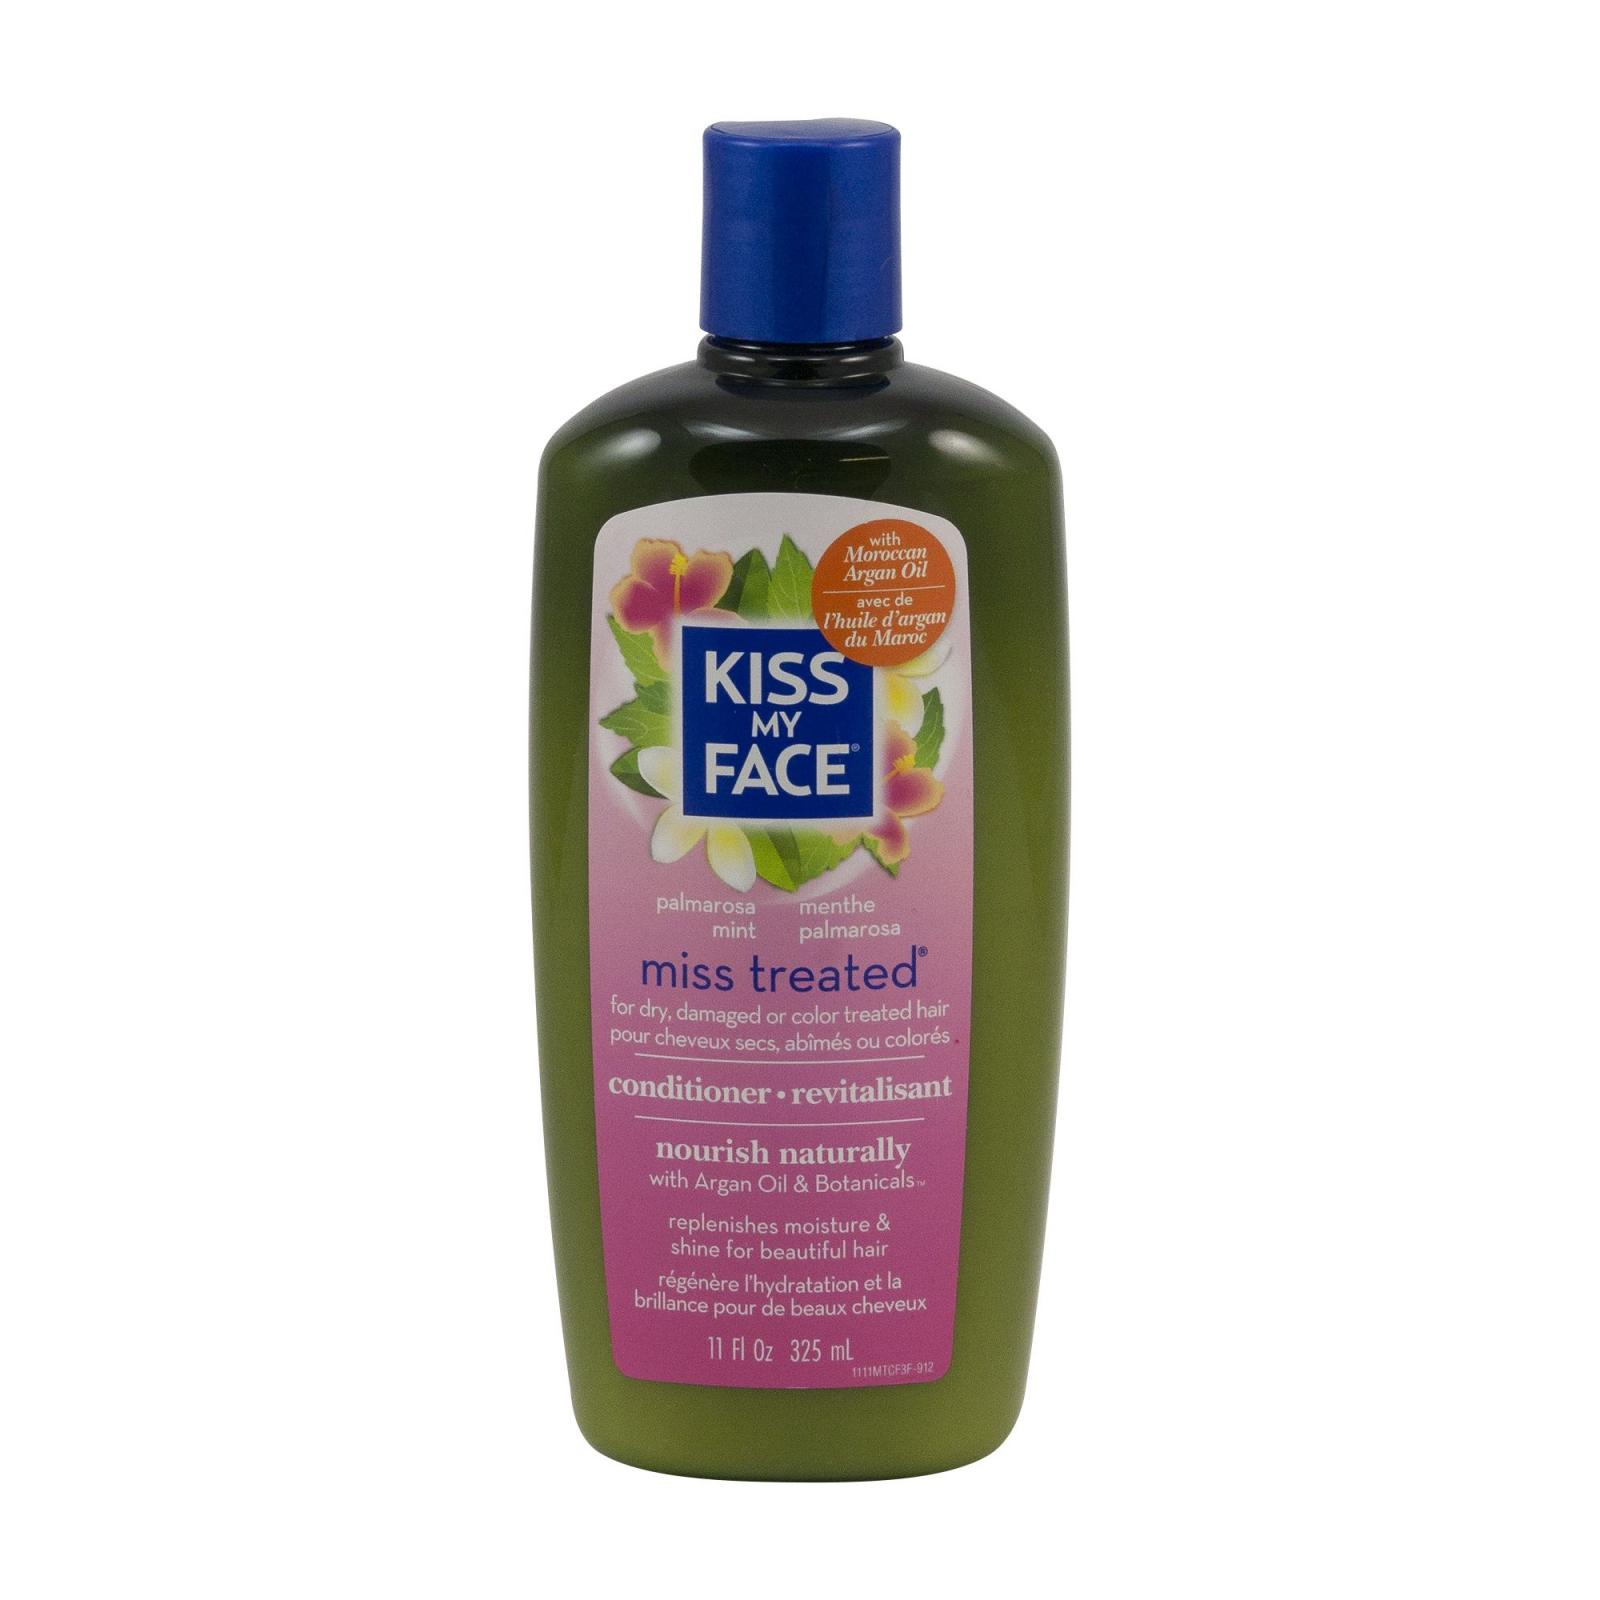 Kiss My Face Corp. Kondicionér Miss treated 325 ml